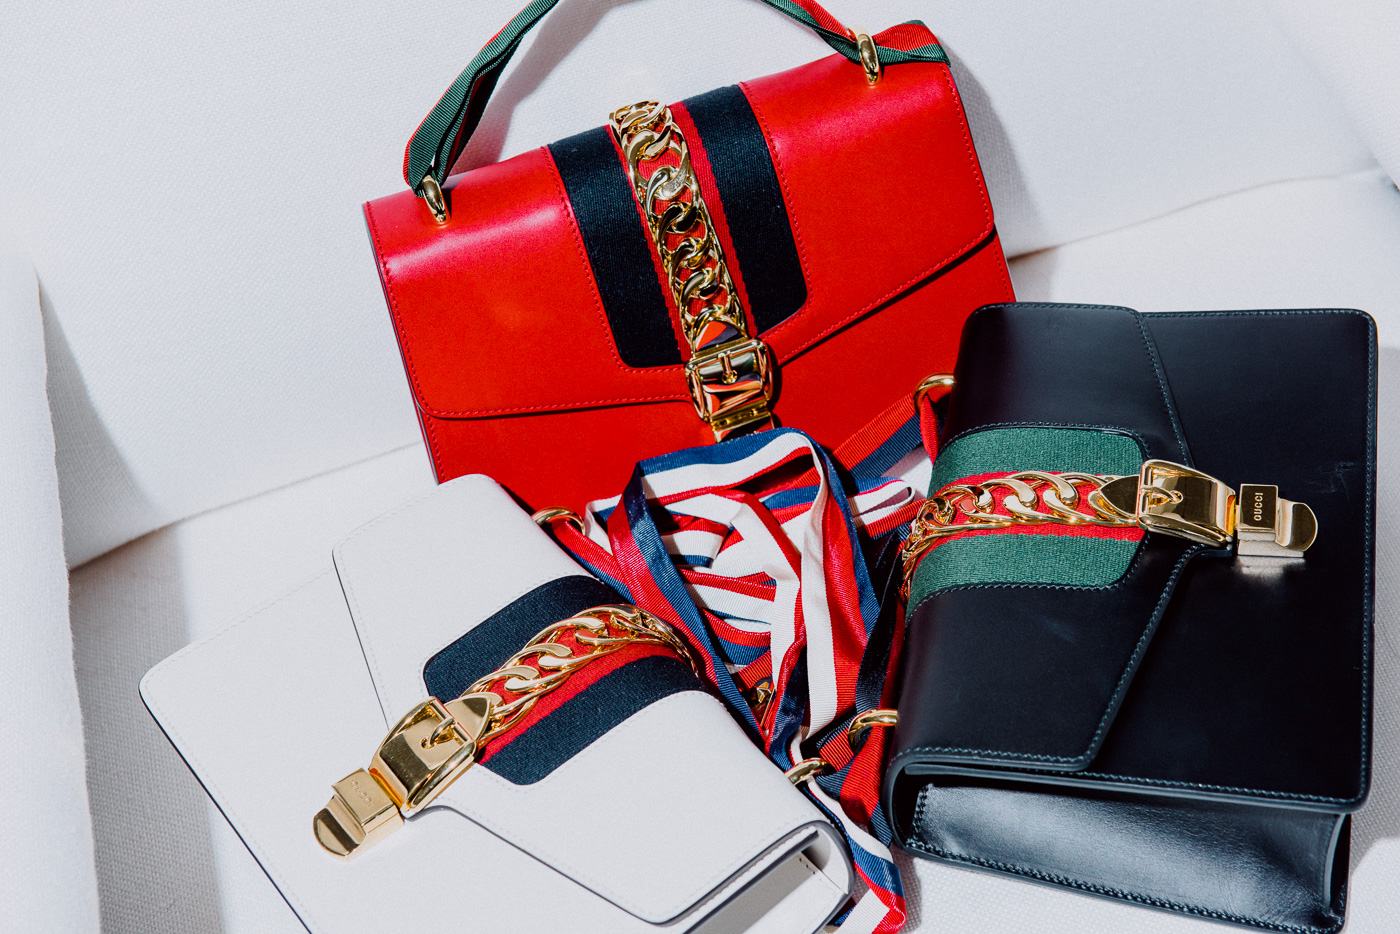 3a2578d9041 A Day With Gucci Spring 2018 And The New Sylvie Bag Purseblog